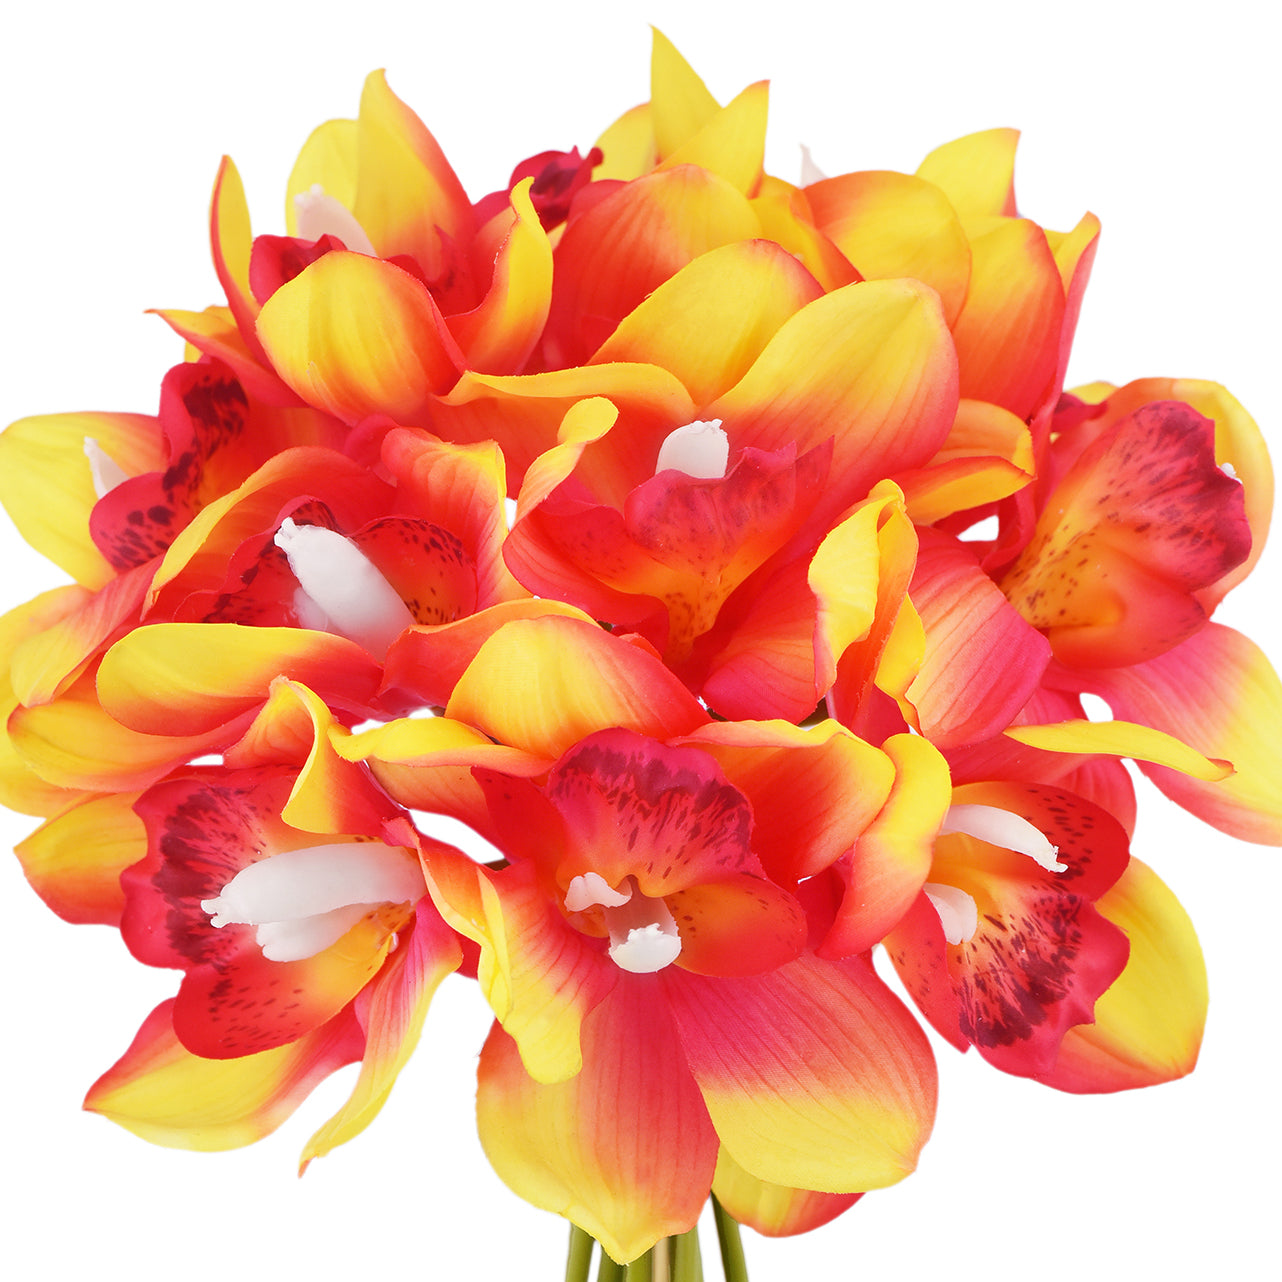 12 Stems Artificial Real Touch Sunset Red Cymbidium Flowers & Bouquet 9.1 Inches (23cm)